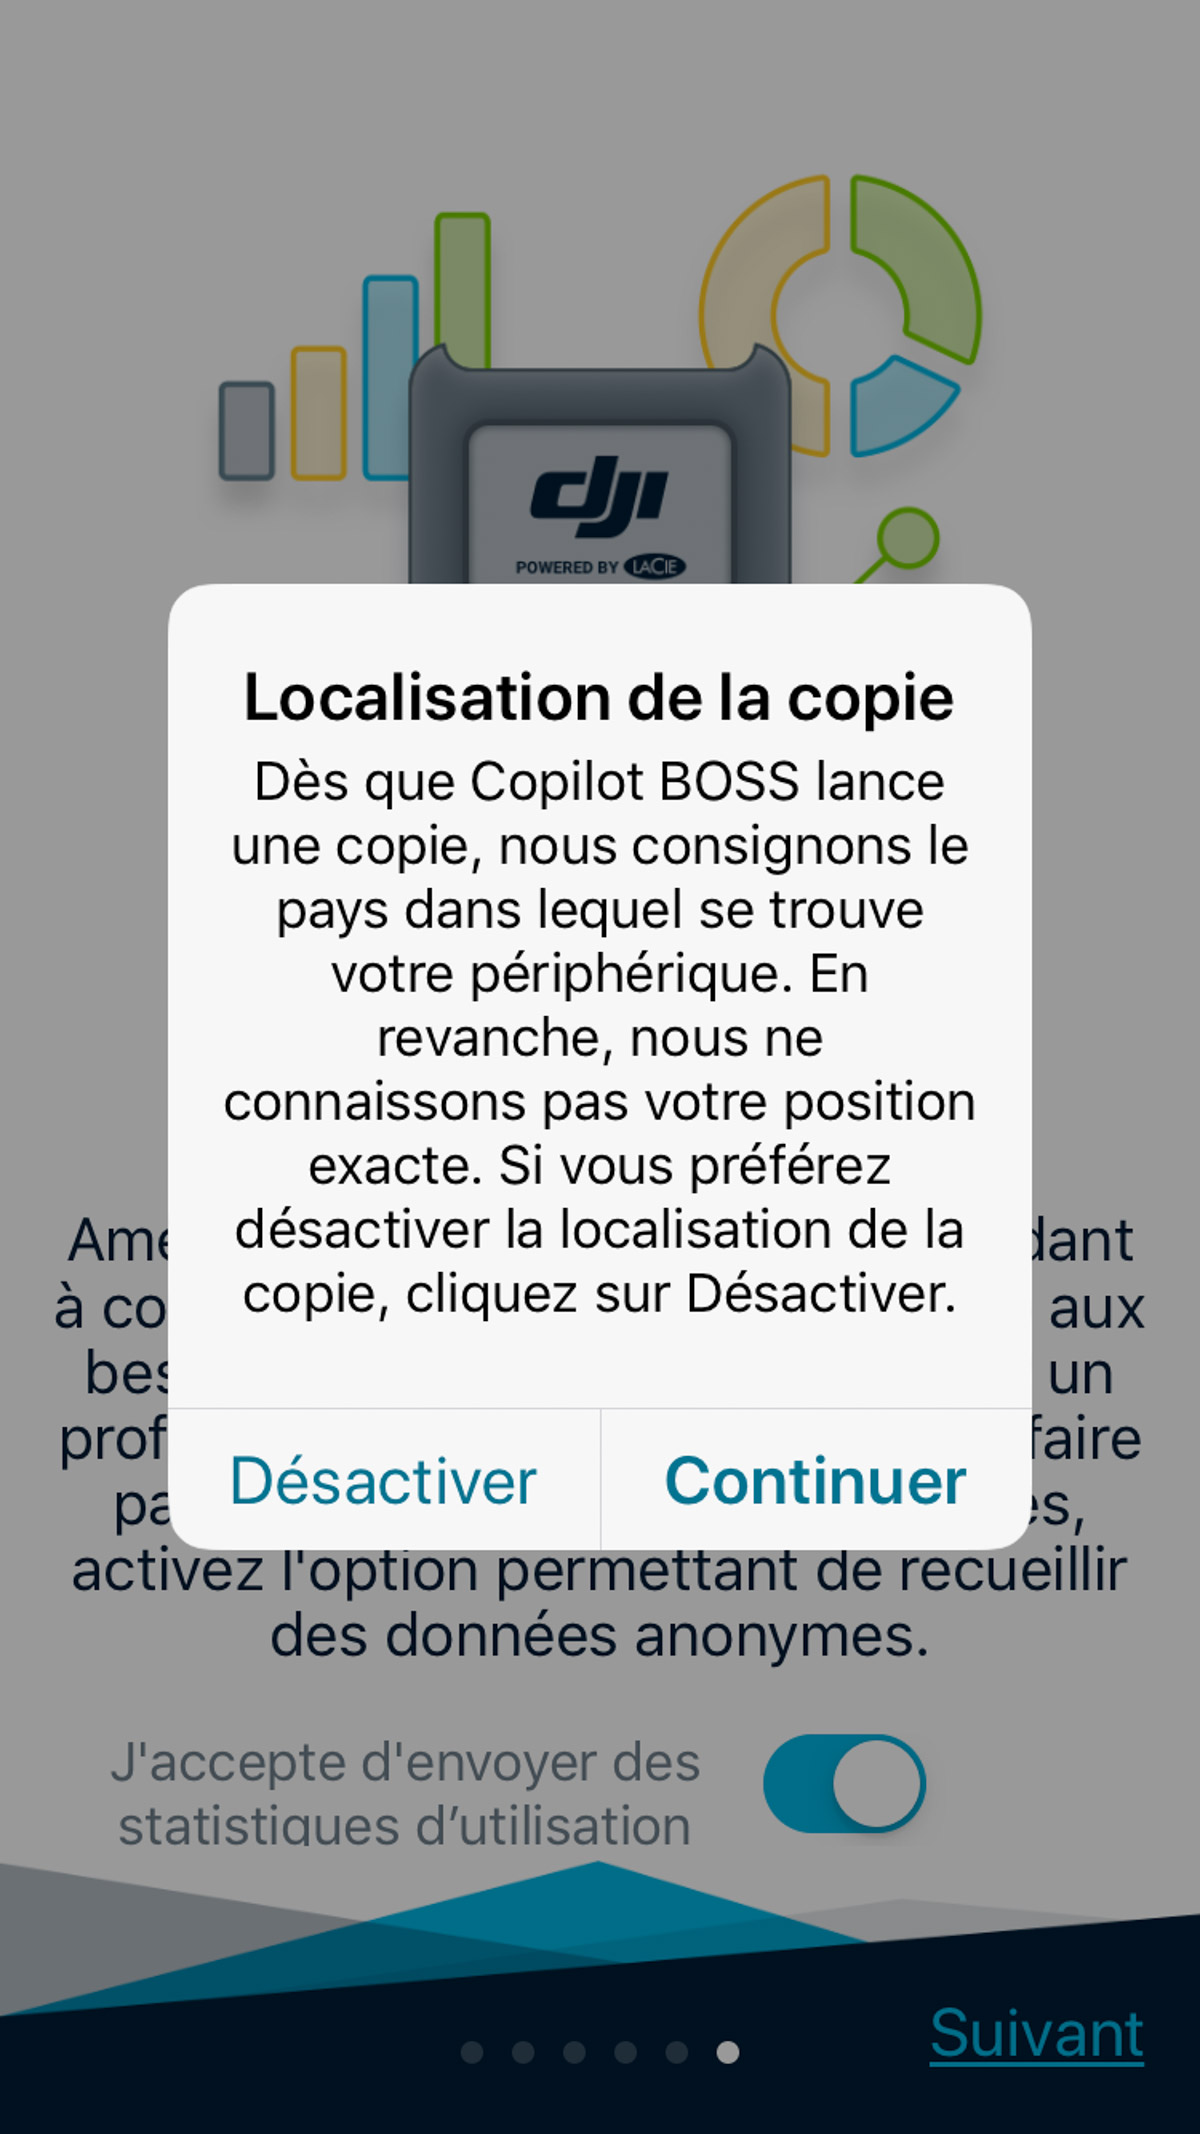 L'application peut géolocaliser la copie de sauvegarde